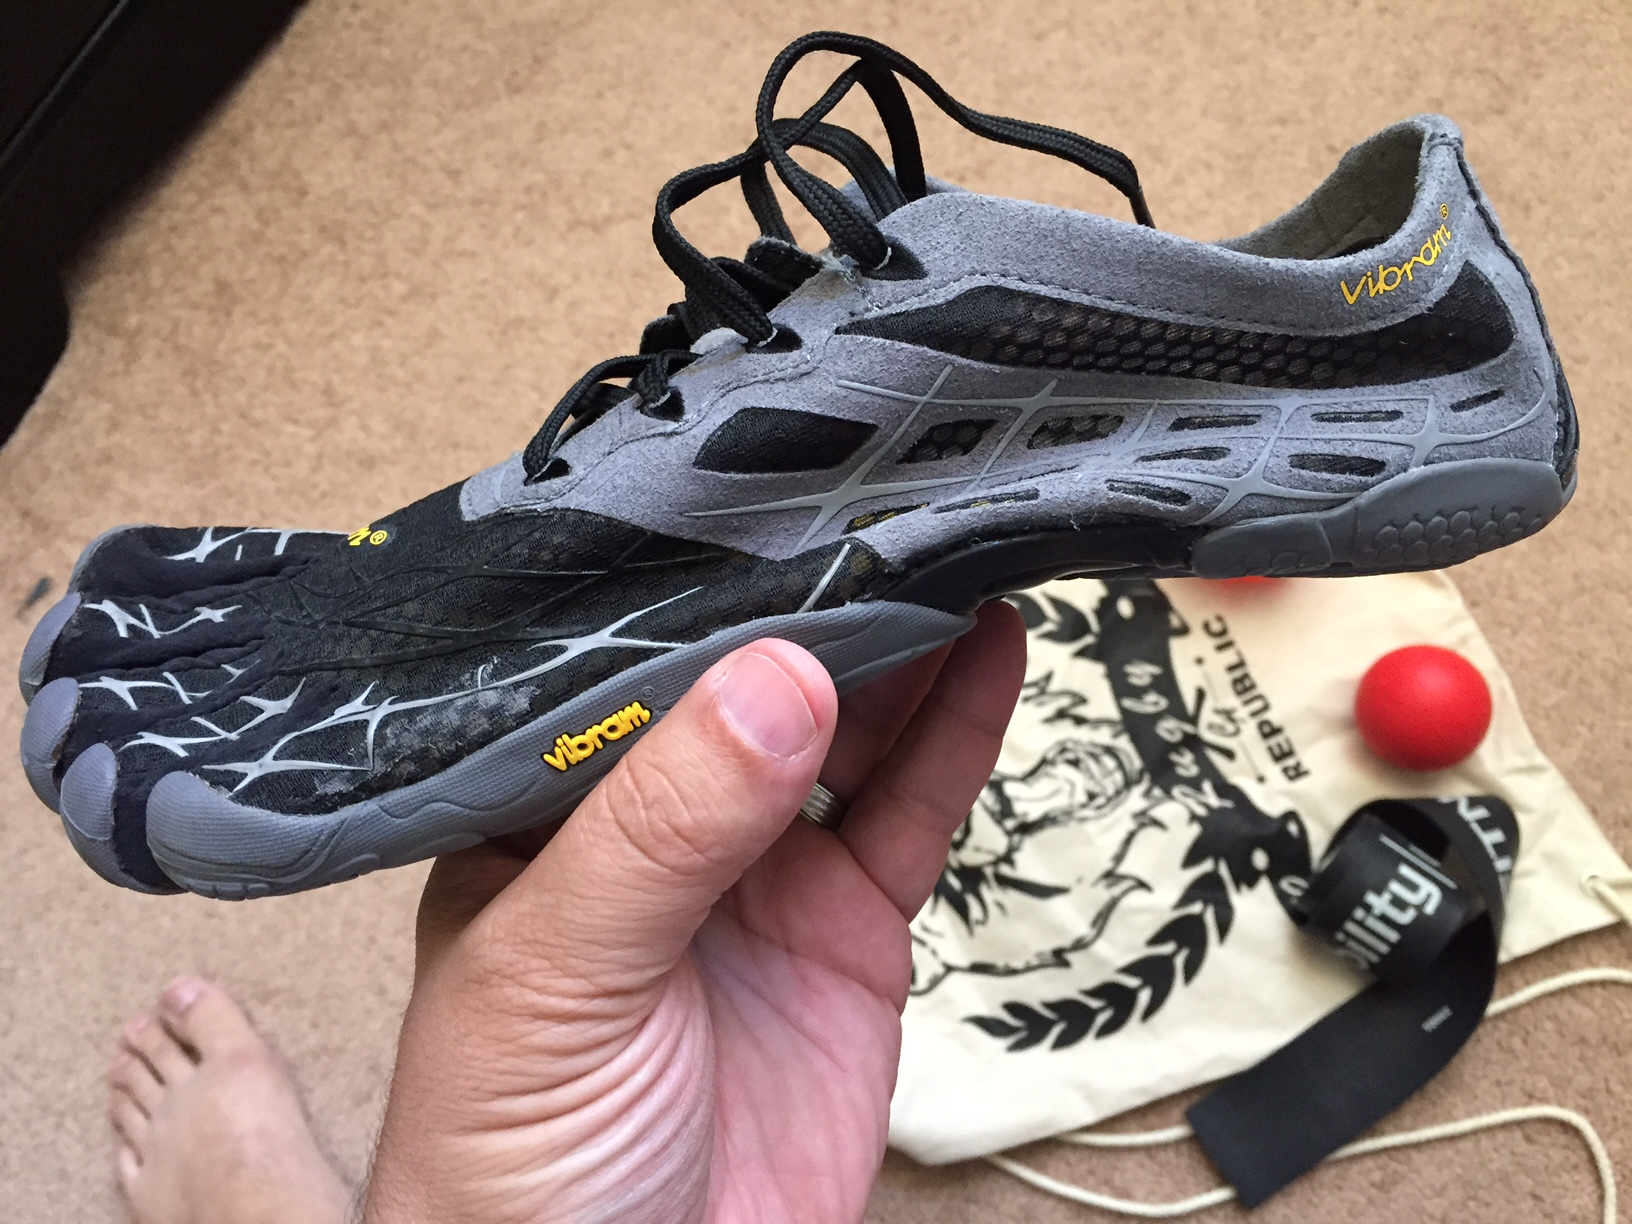 Vibram Five Fingers For Rugby Training